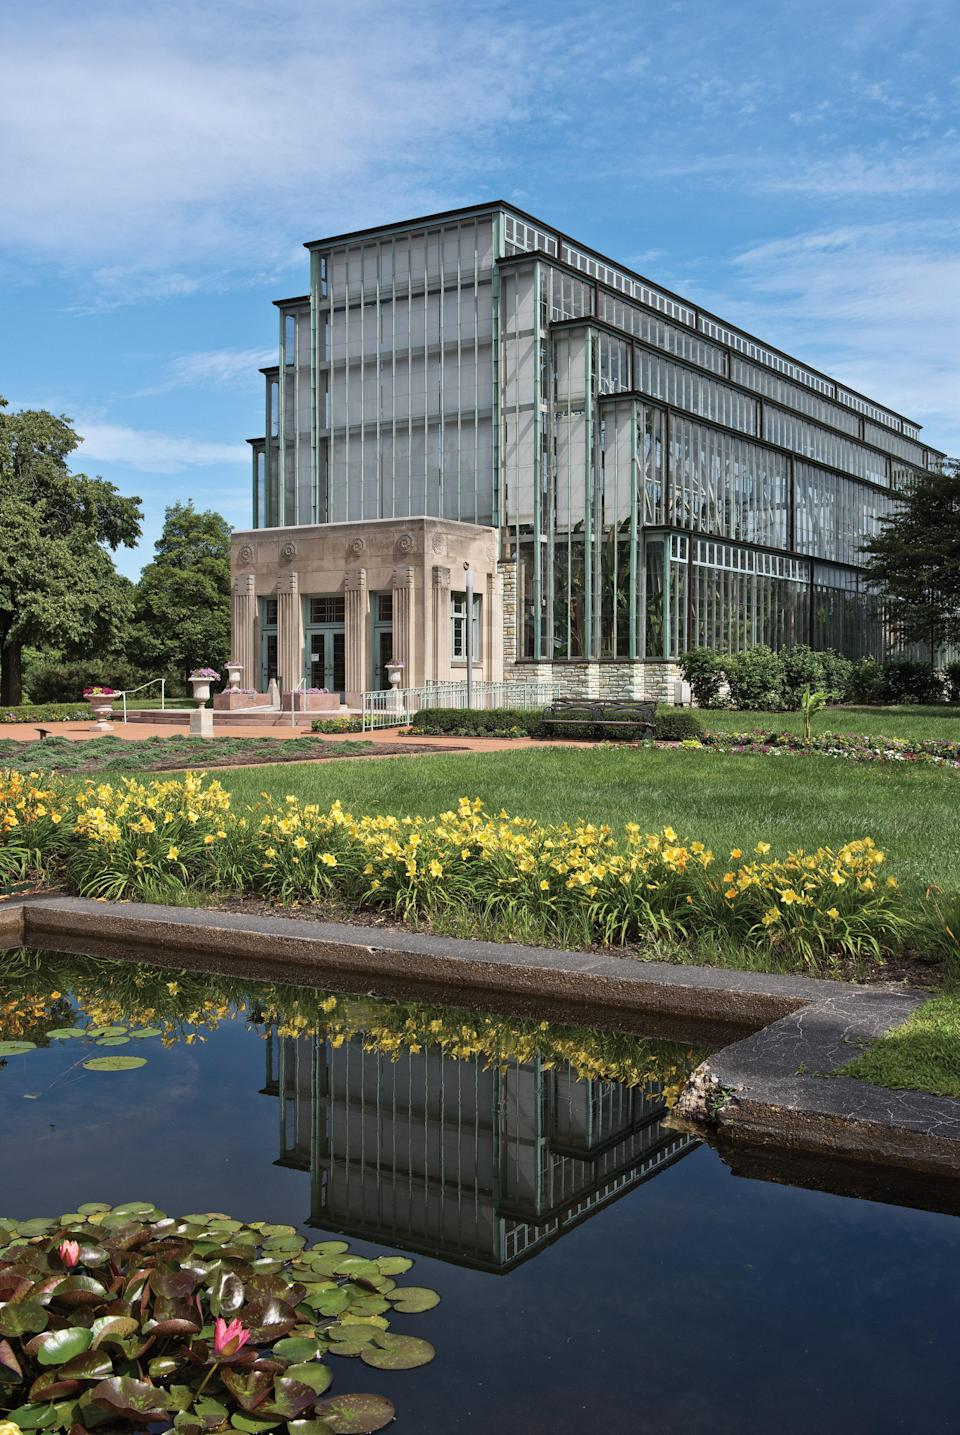 Built in 1936 as part of the Works Progress Administration, the Forest Park Conservatory in St. Louis moves away from the Victorian tradition with an Art Deco form.